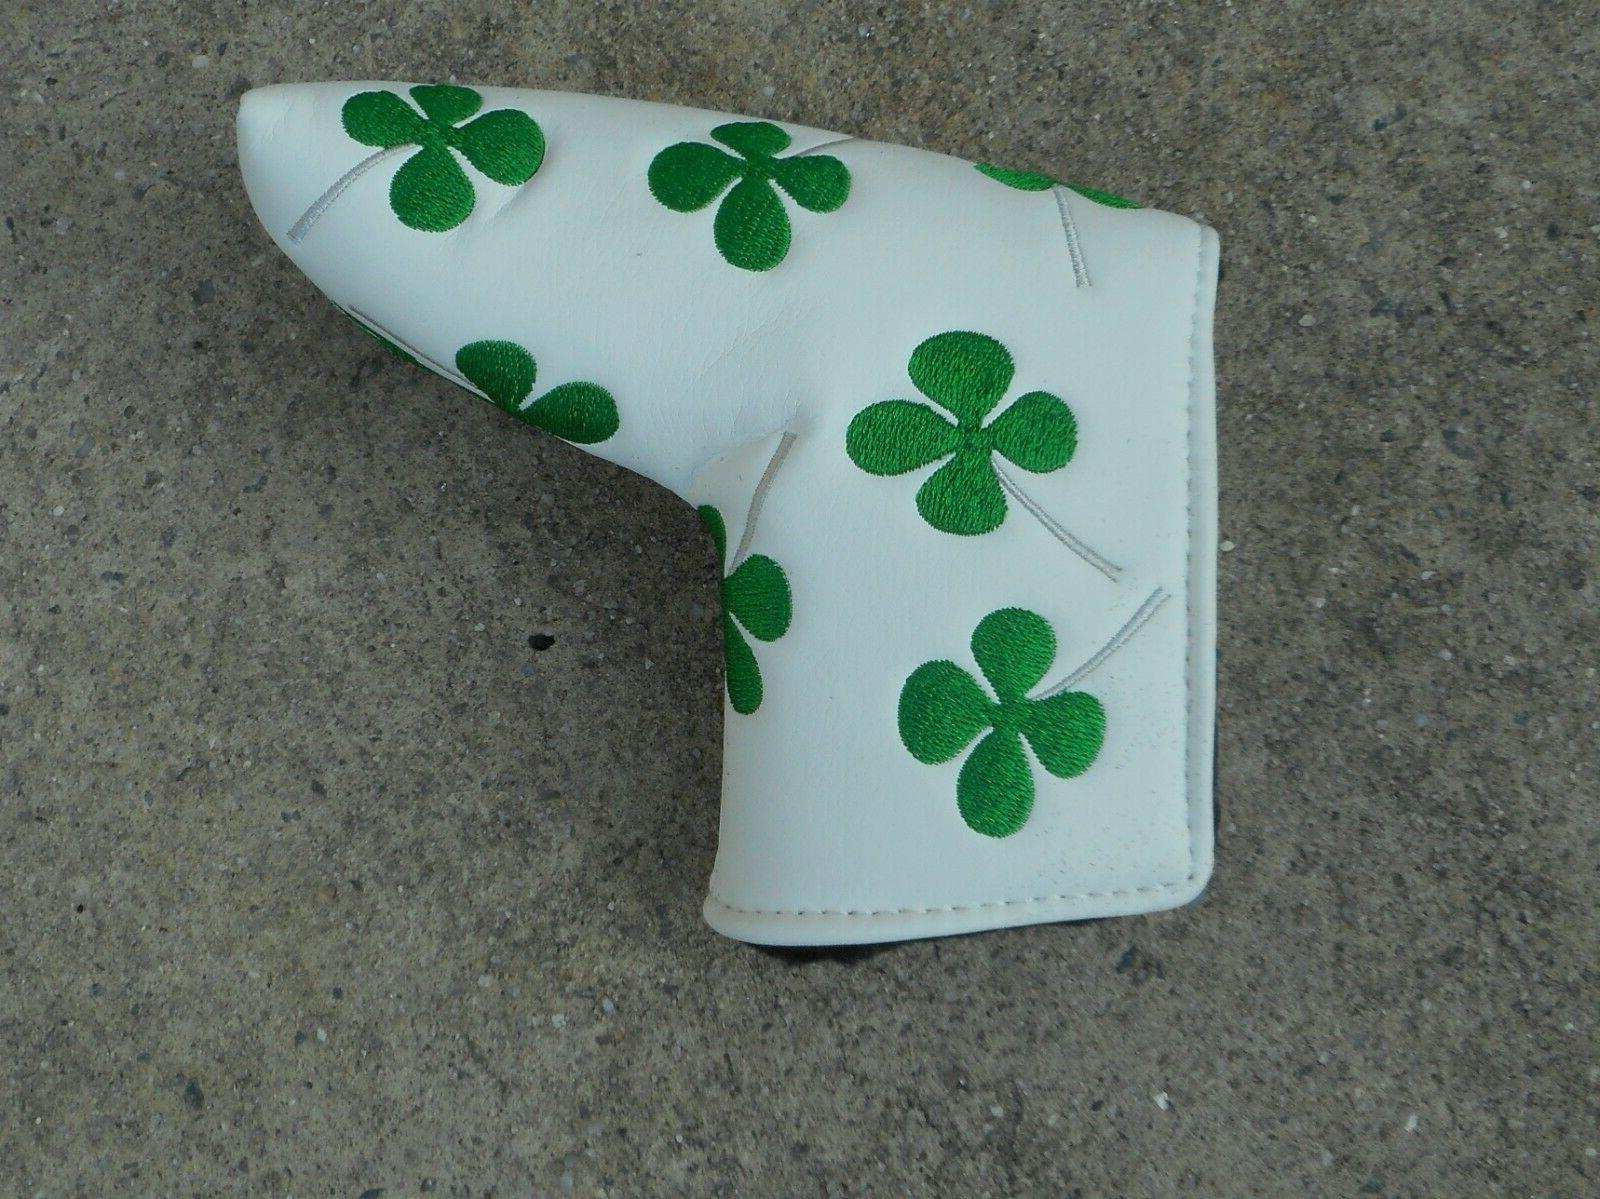 Miura M07 Forged Milled Plumbers 340 Clover Cover